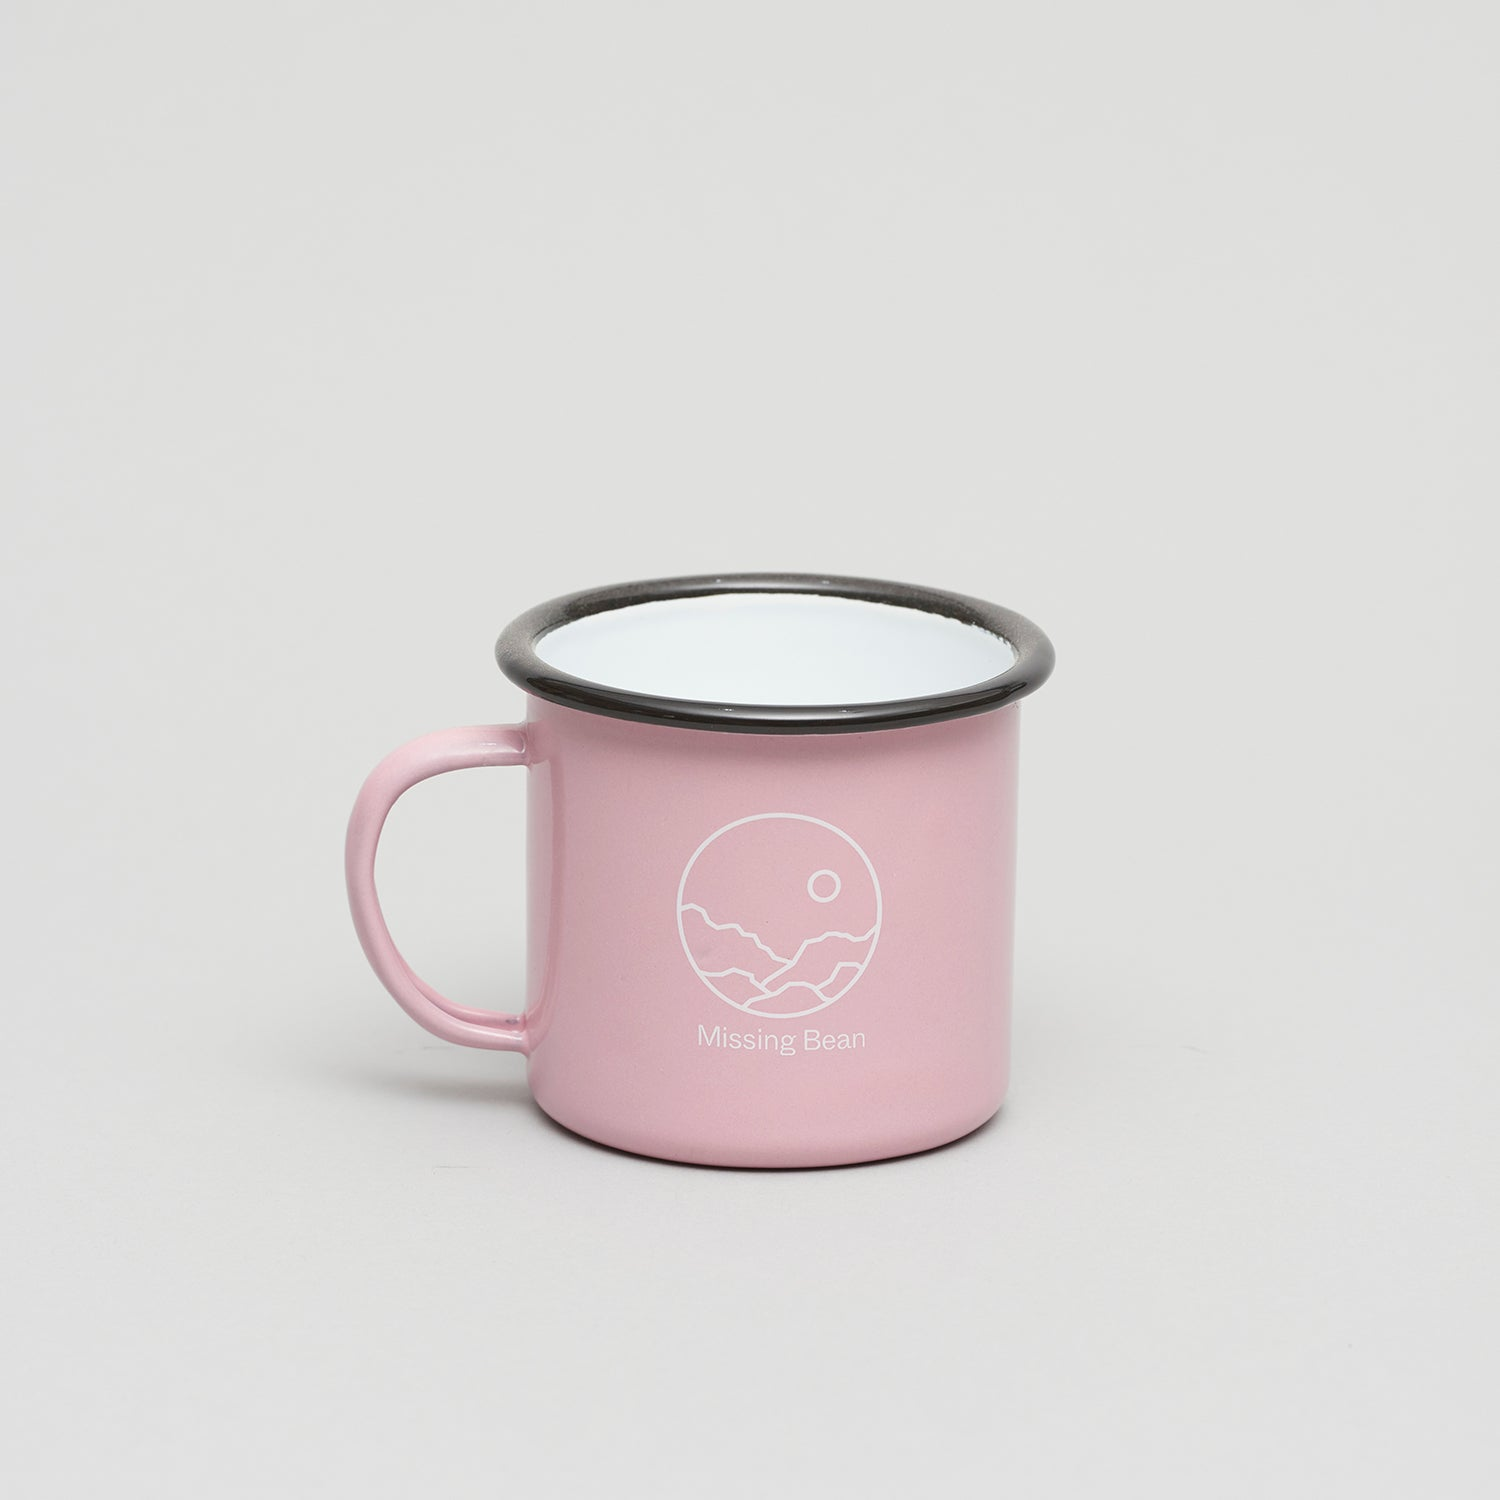 Missing Bean Enamel Mug